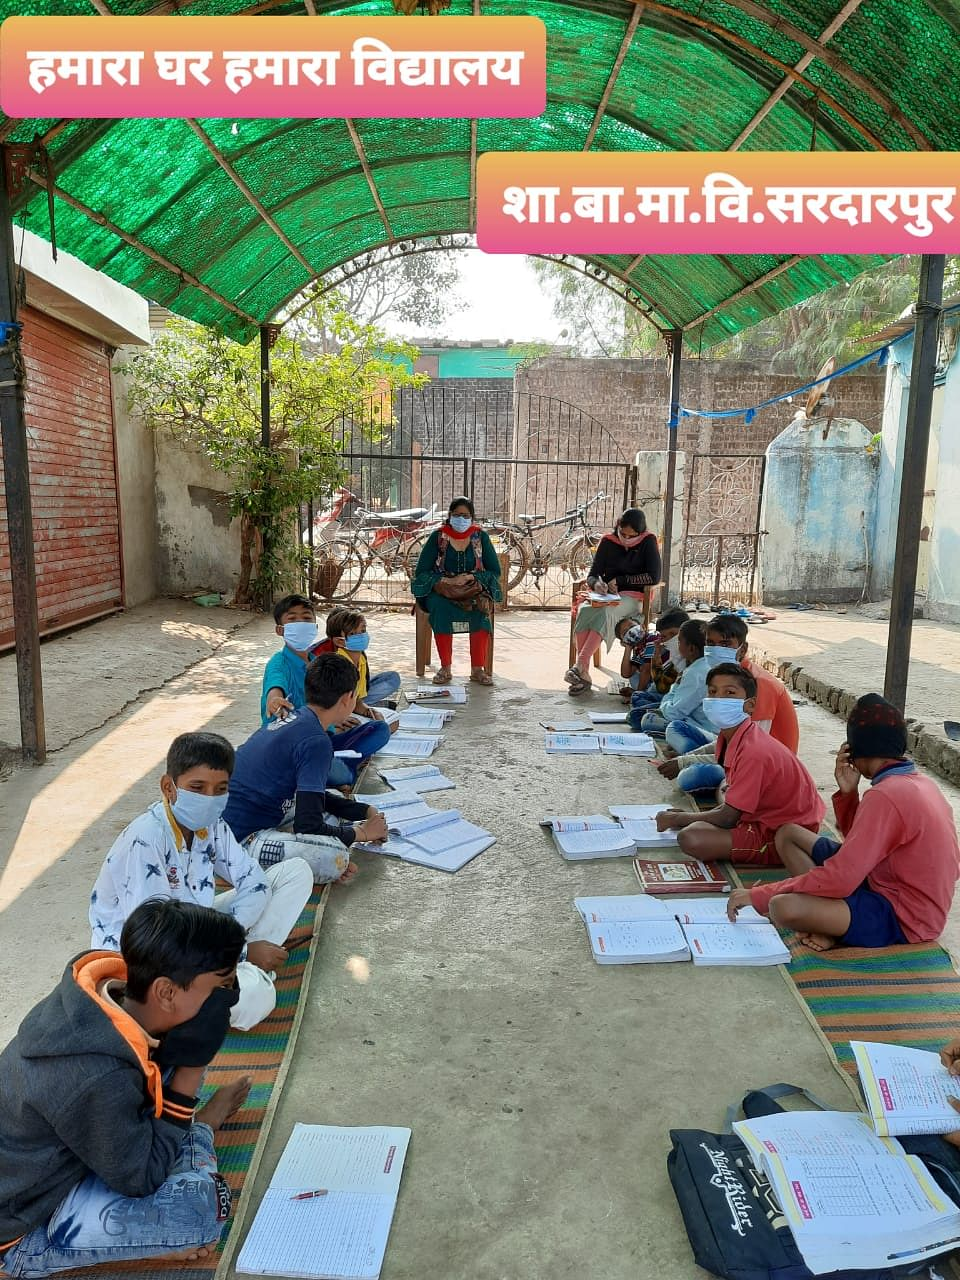 Madhya Pradesh: Session at closure but students void of uniform in Sardarpur tehsil of Dhar district